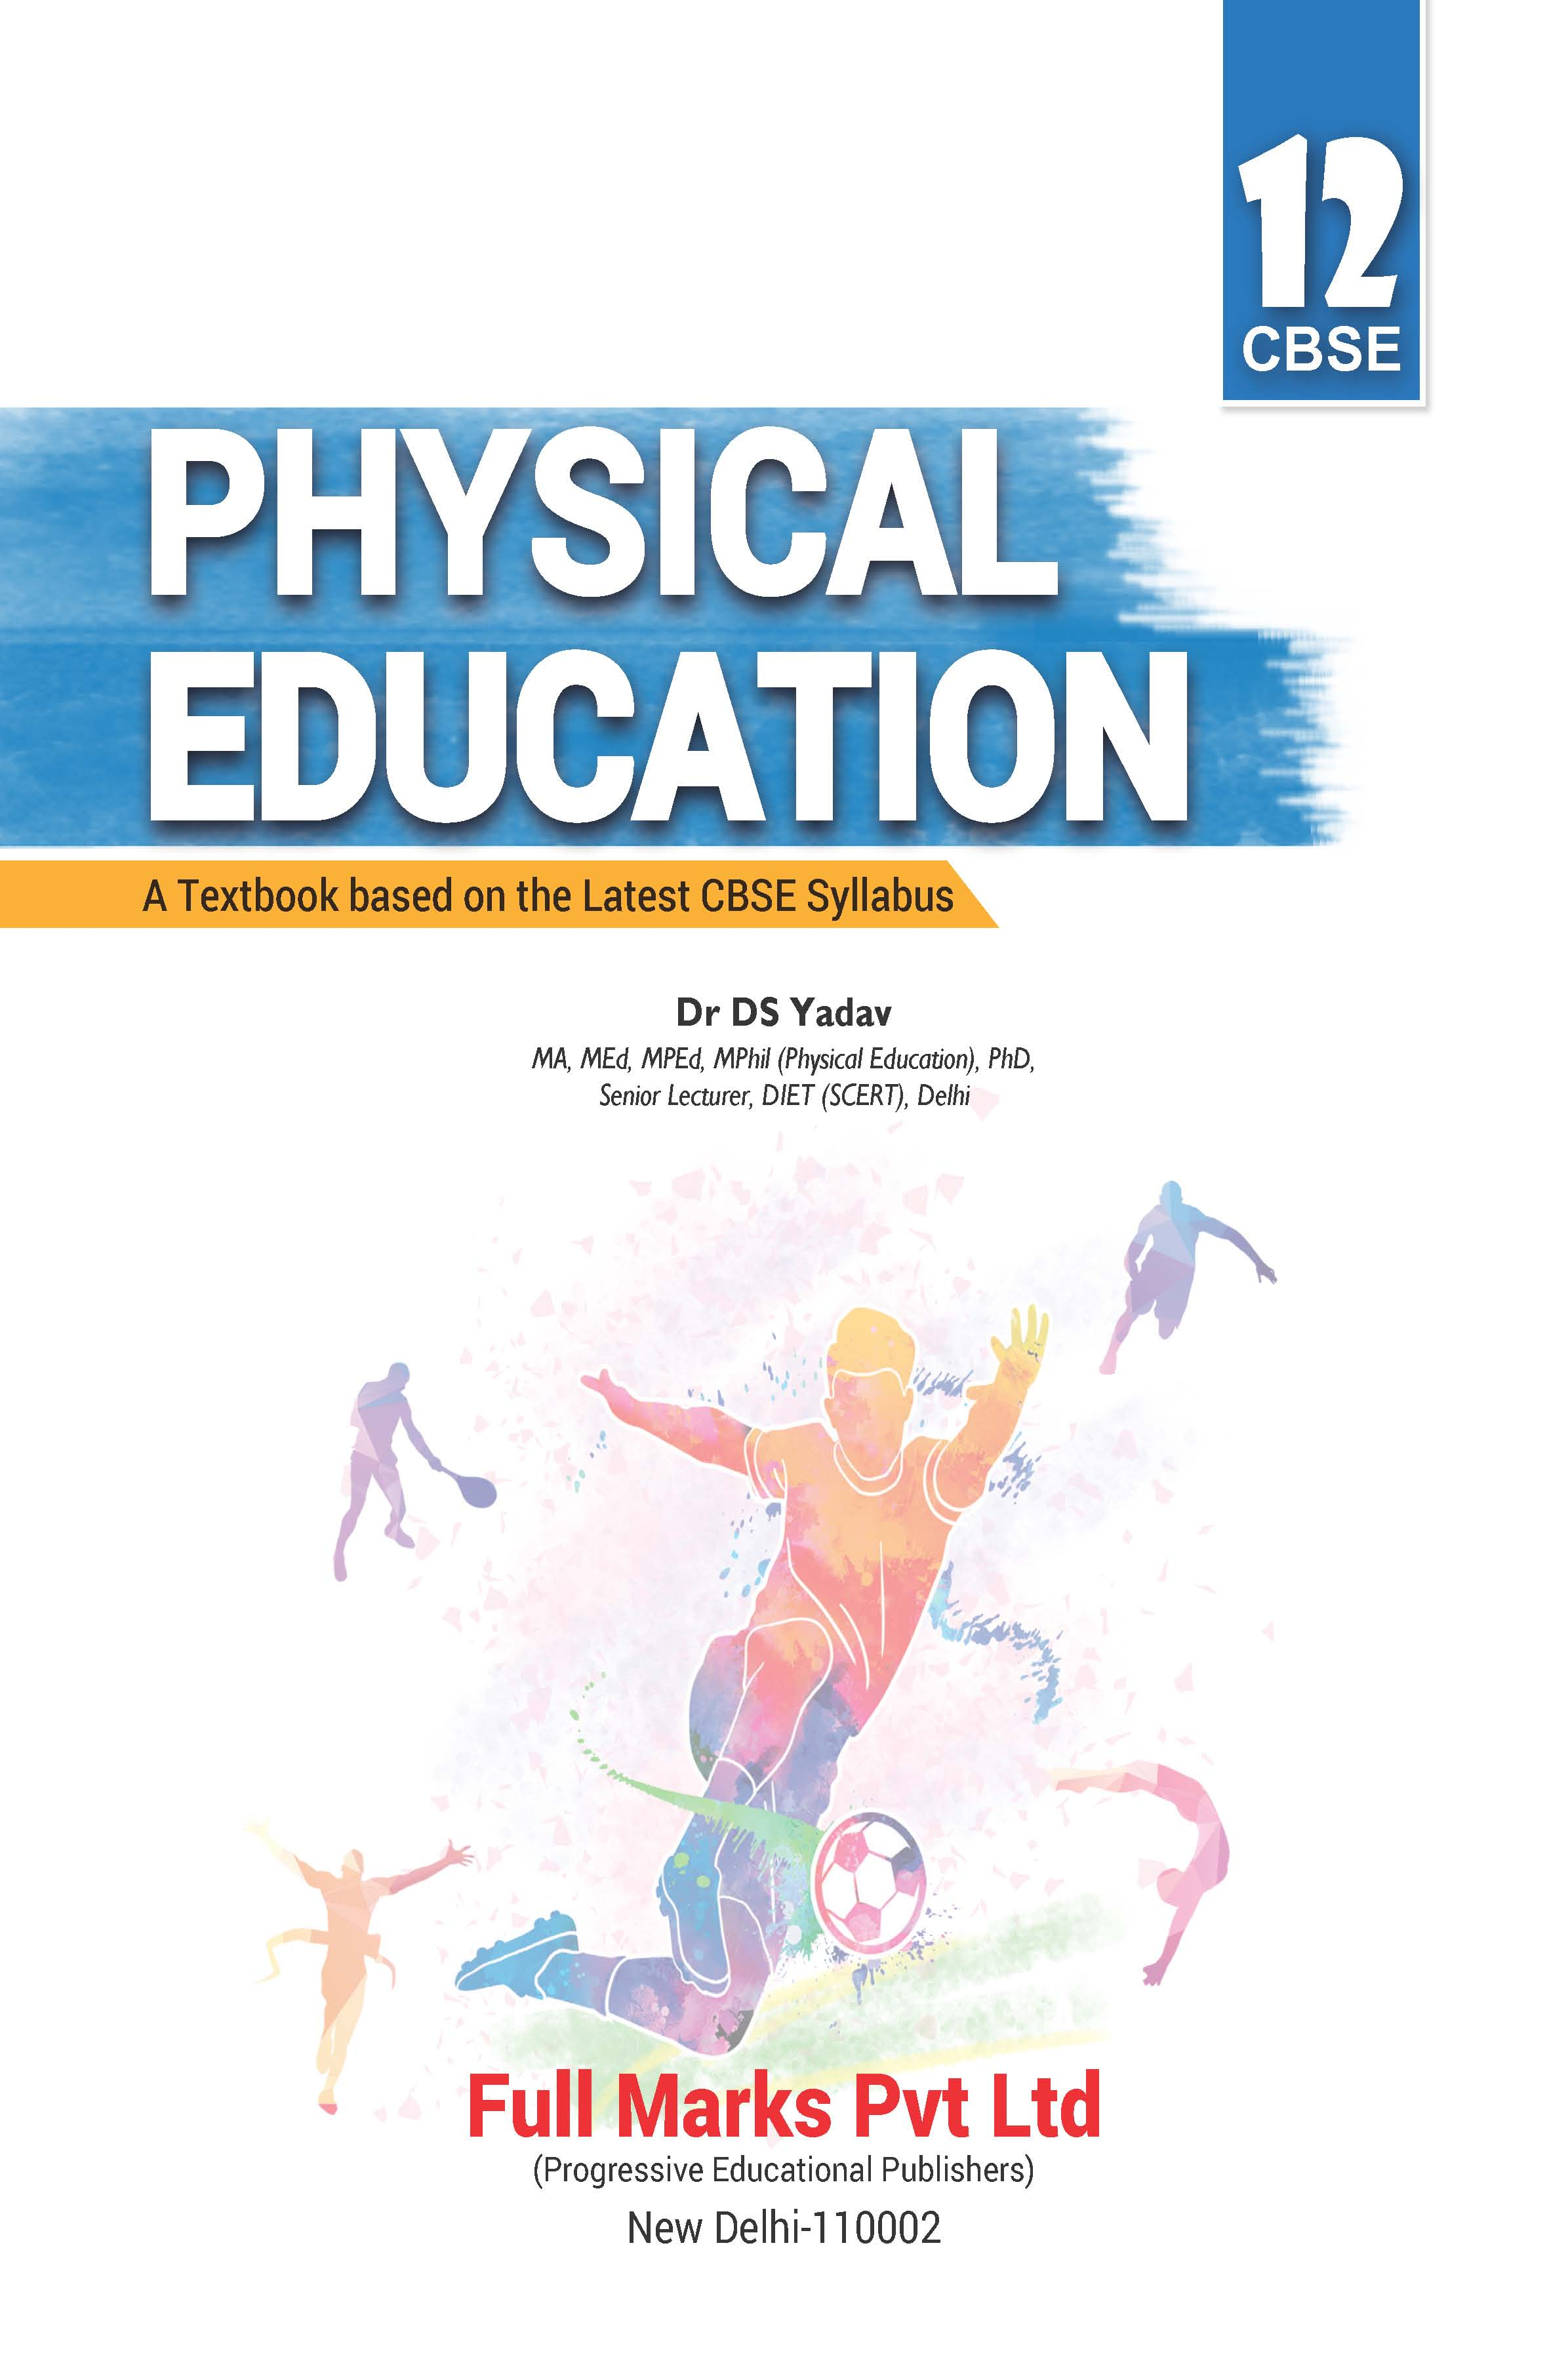 Physical Education (A Textbook based on the Latest CBSE Syllabus) Class 12